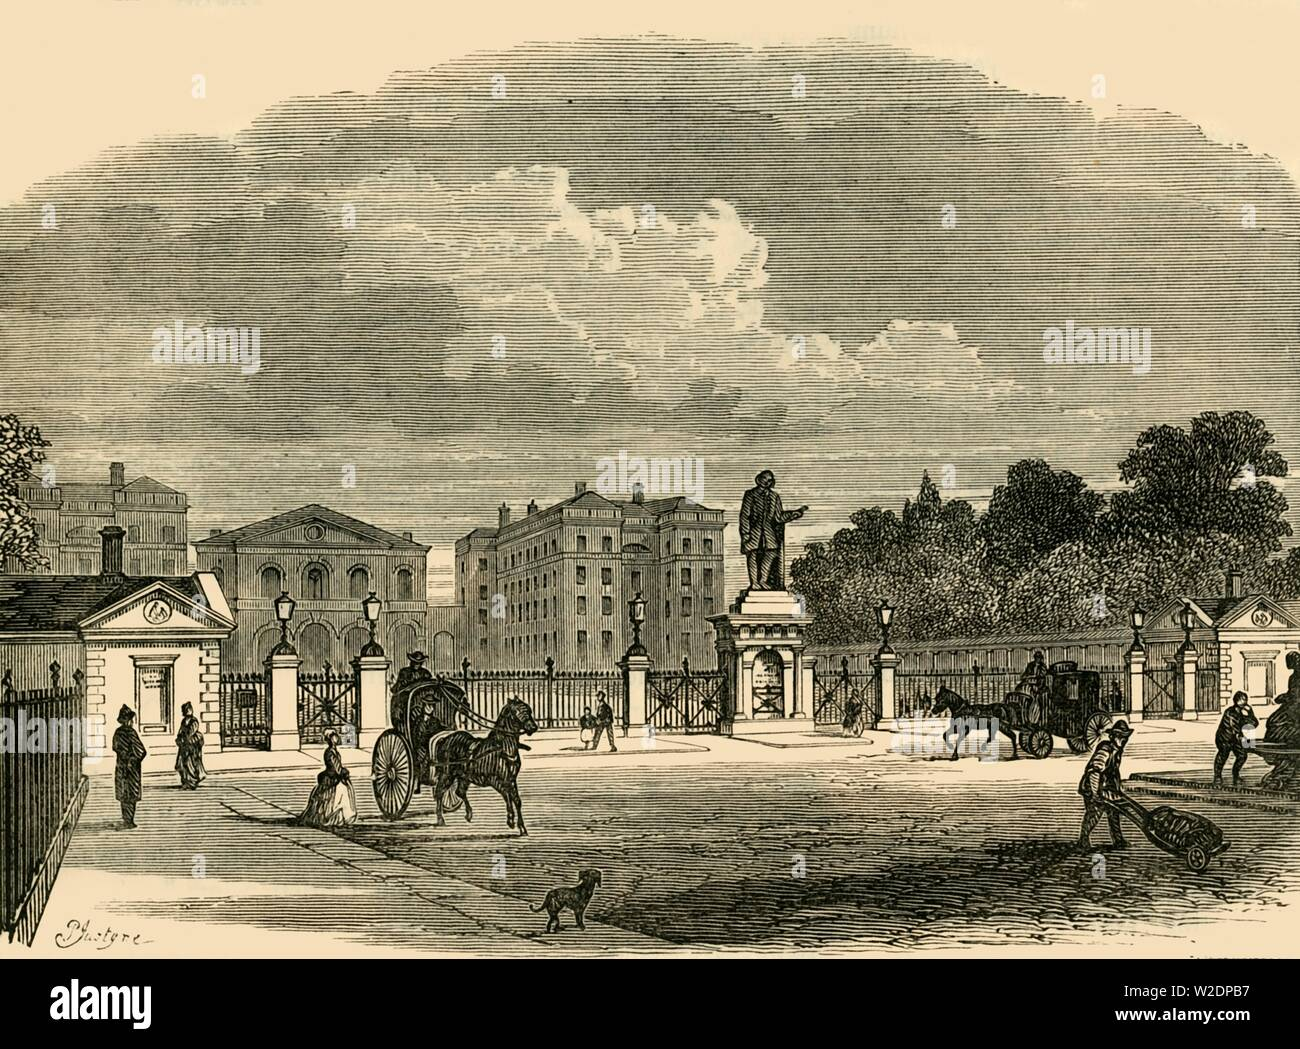 """'Gateway of the Foundling Hospital', c1876. Founded in 1739 by Thomas Coram, the Foundling Hospital in  Bloomsbury, was a children's home for the """"education and maintenance of exposed and deserted young children' and a fashionable charity of the time. From """"Old and New London: A Narrative of Its History, Its People, and Its Places. The Western and Northern Studies"""", by Edward Walford. [Cassell, Petter, Galpin & Co., London, Paris & New York] - Stock Image"""